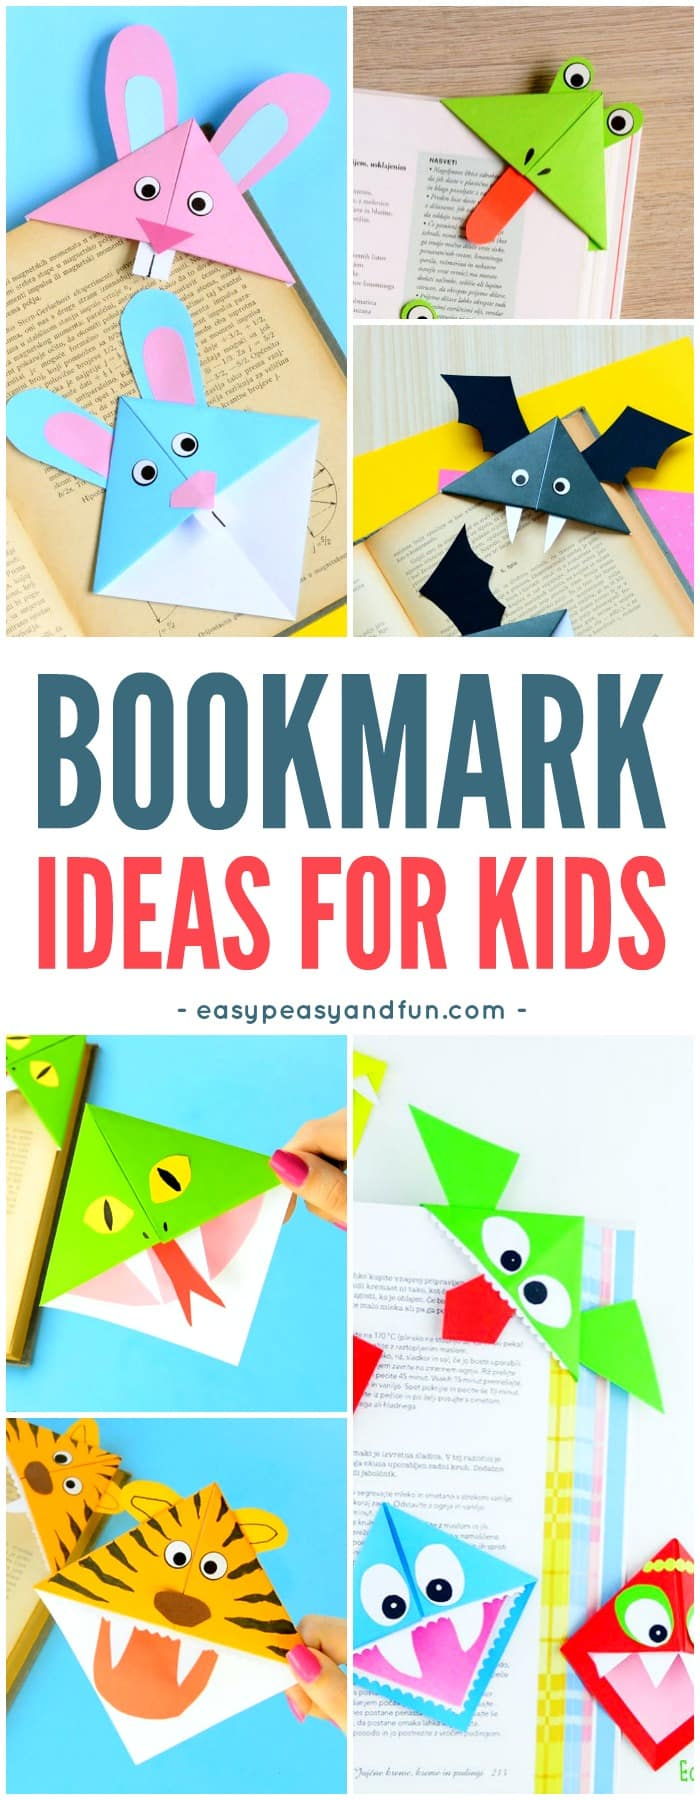 Emejing bookmark design ideas photos home design ideas How to make a simple bookmark